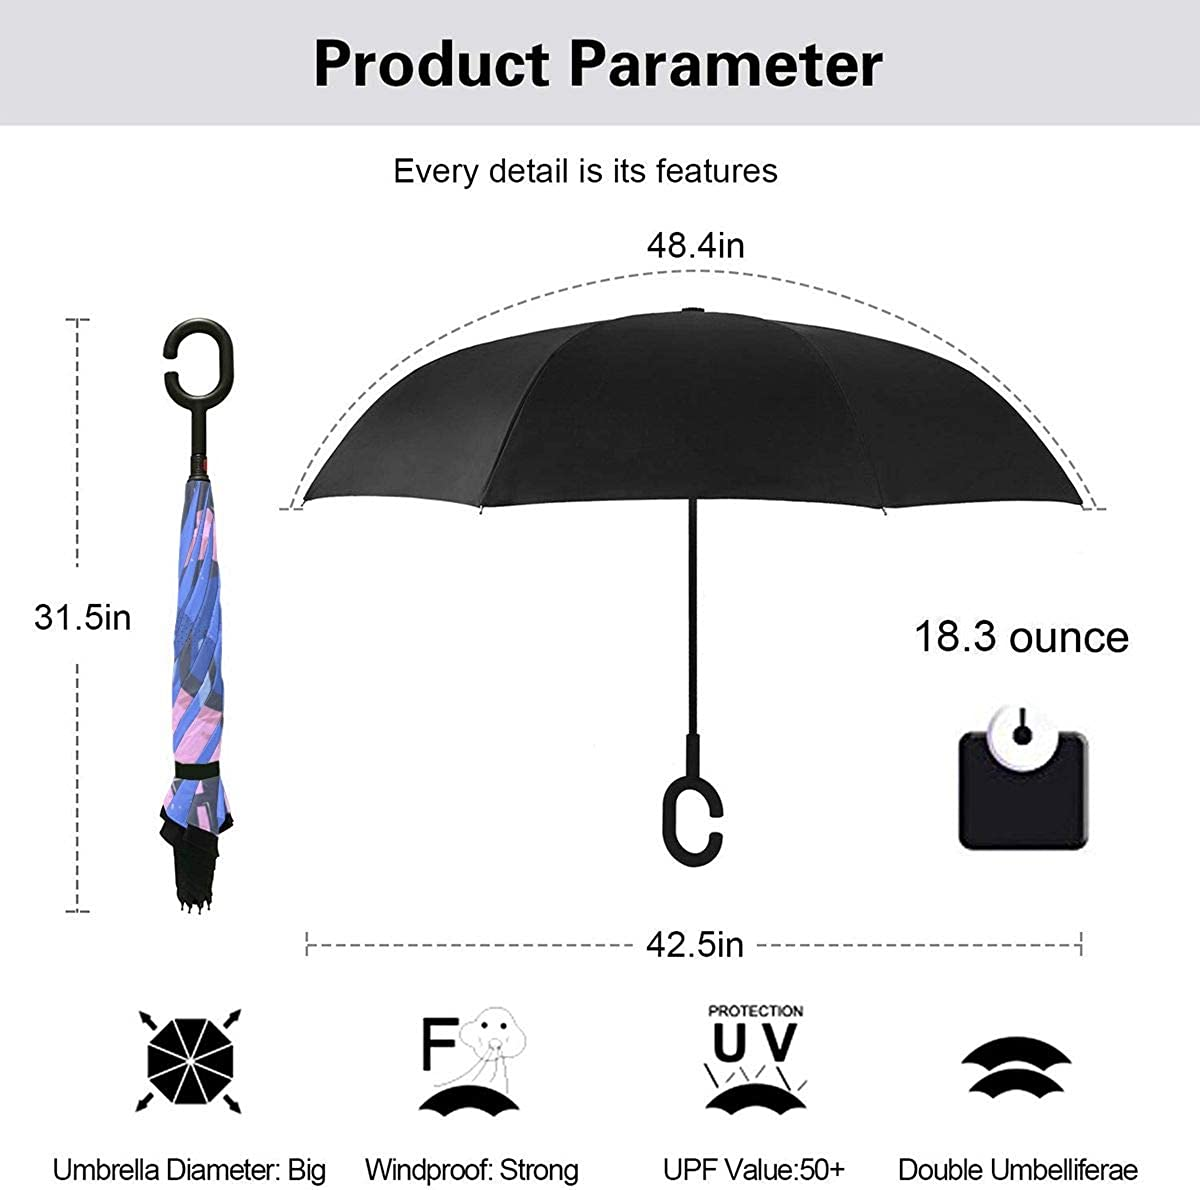 Reverse Umbrella Double Layer Inverted Umbrellas For Car Rain Outdoor With C-Shaped Handle Starfish Blue Background Pattern Personalized